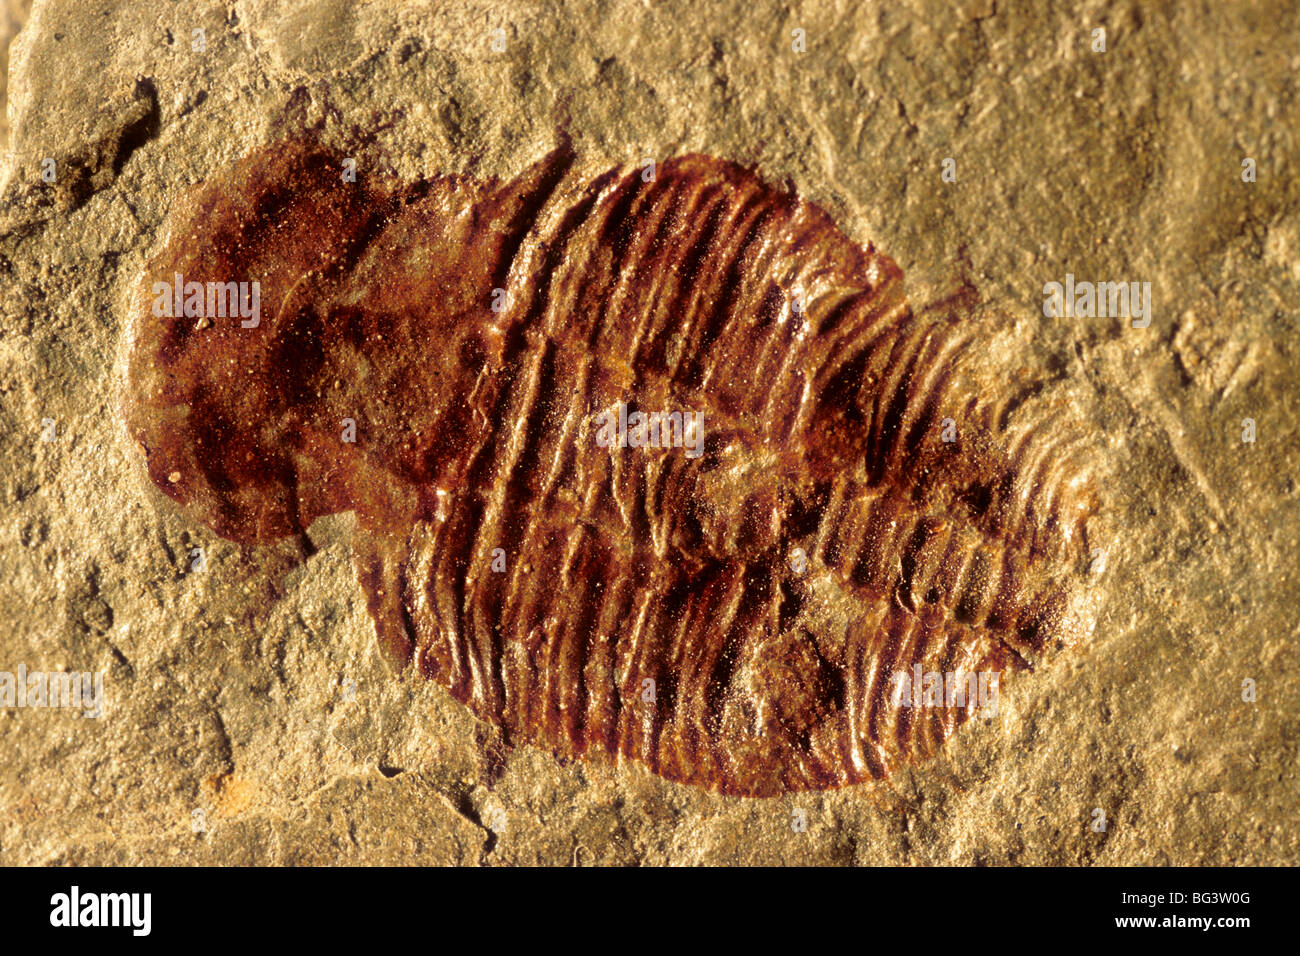 Fossil trilobite from Bright Angel Shale, early to mid Cambrian age, Grand Canyon National Park, Arizona, USA - Stock Image